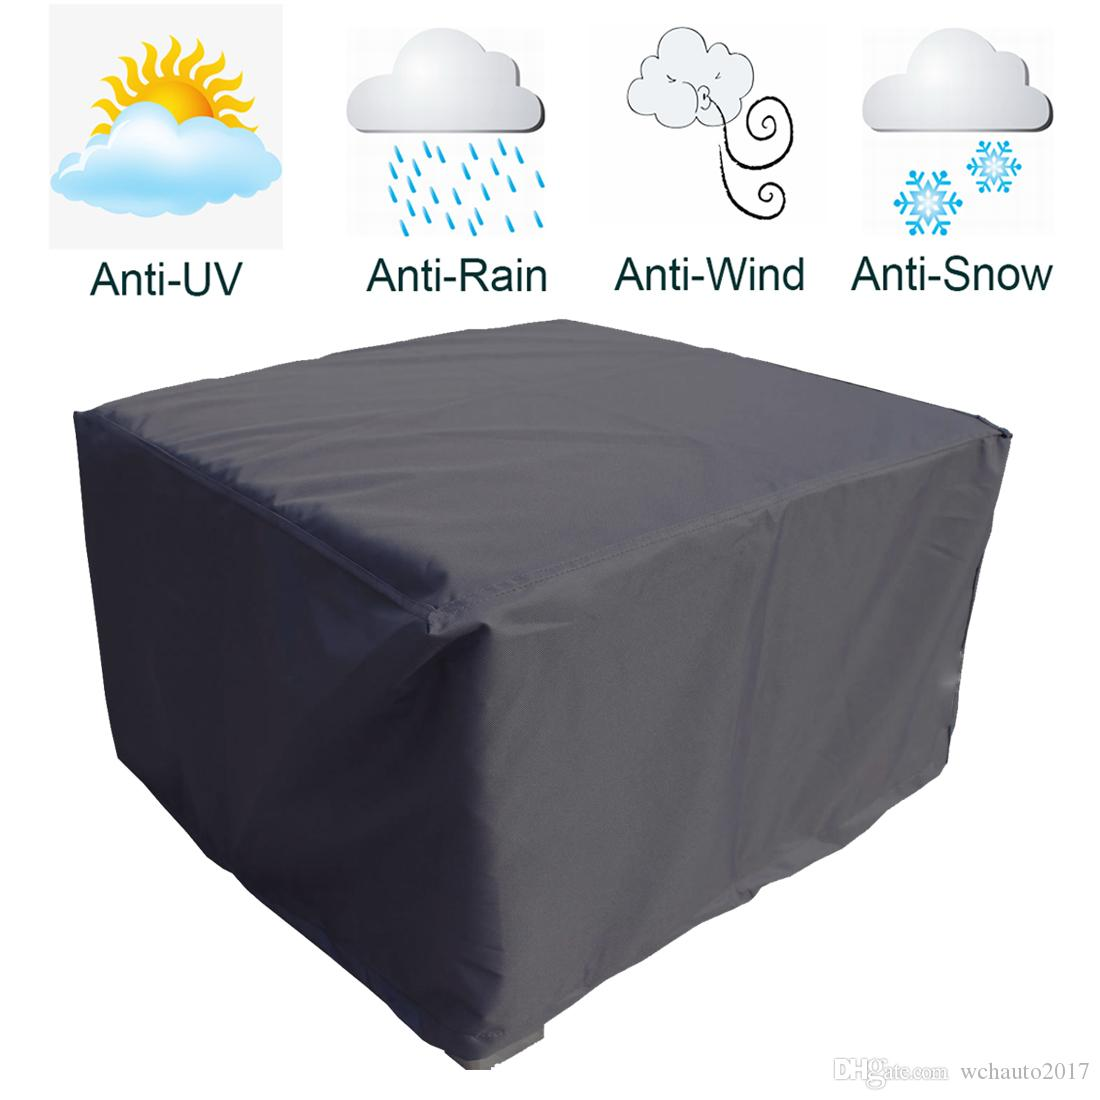 123x123x74cm Patio Table Cover Square Waterproof Outdoo Dust Proof